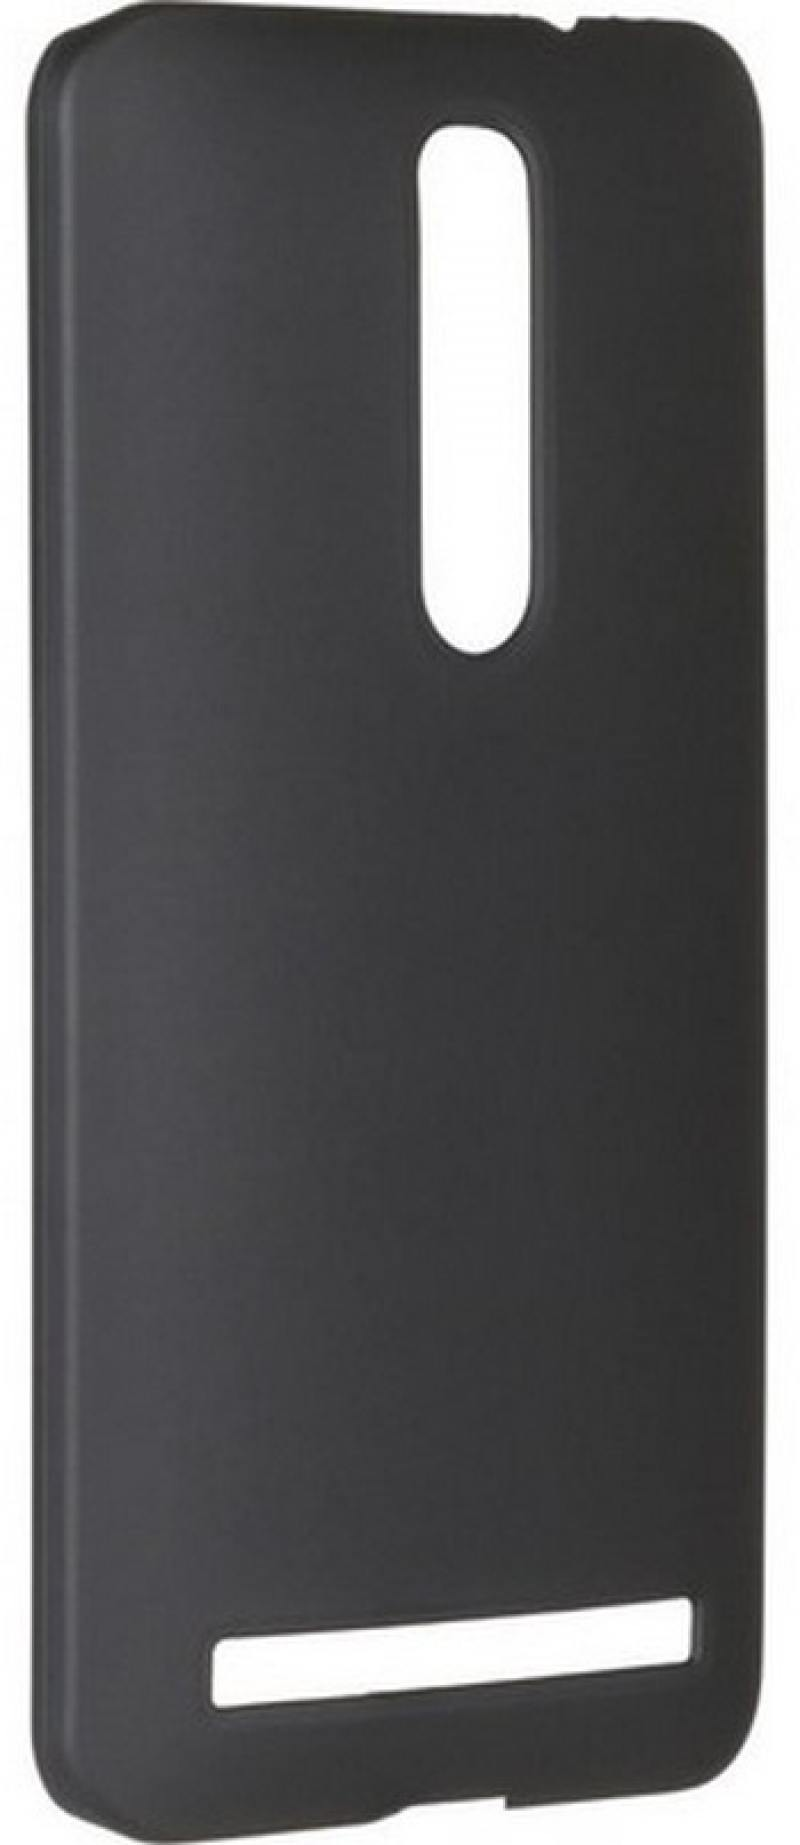 Чехол-накладка для Asus Zenfone С ZC451CG Pulsar CLIPCASE PC Soft-Touch Black клип-кейс, пластик soft-touch цены